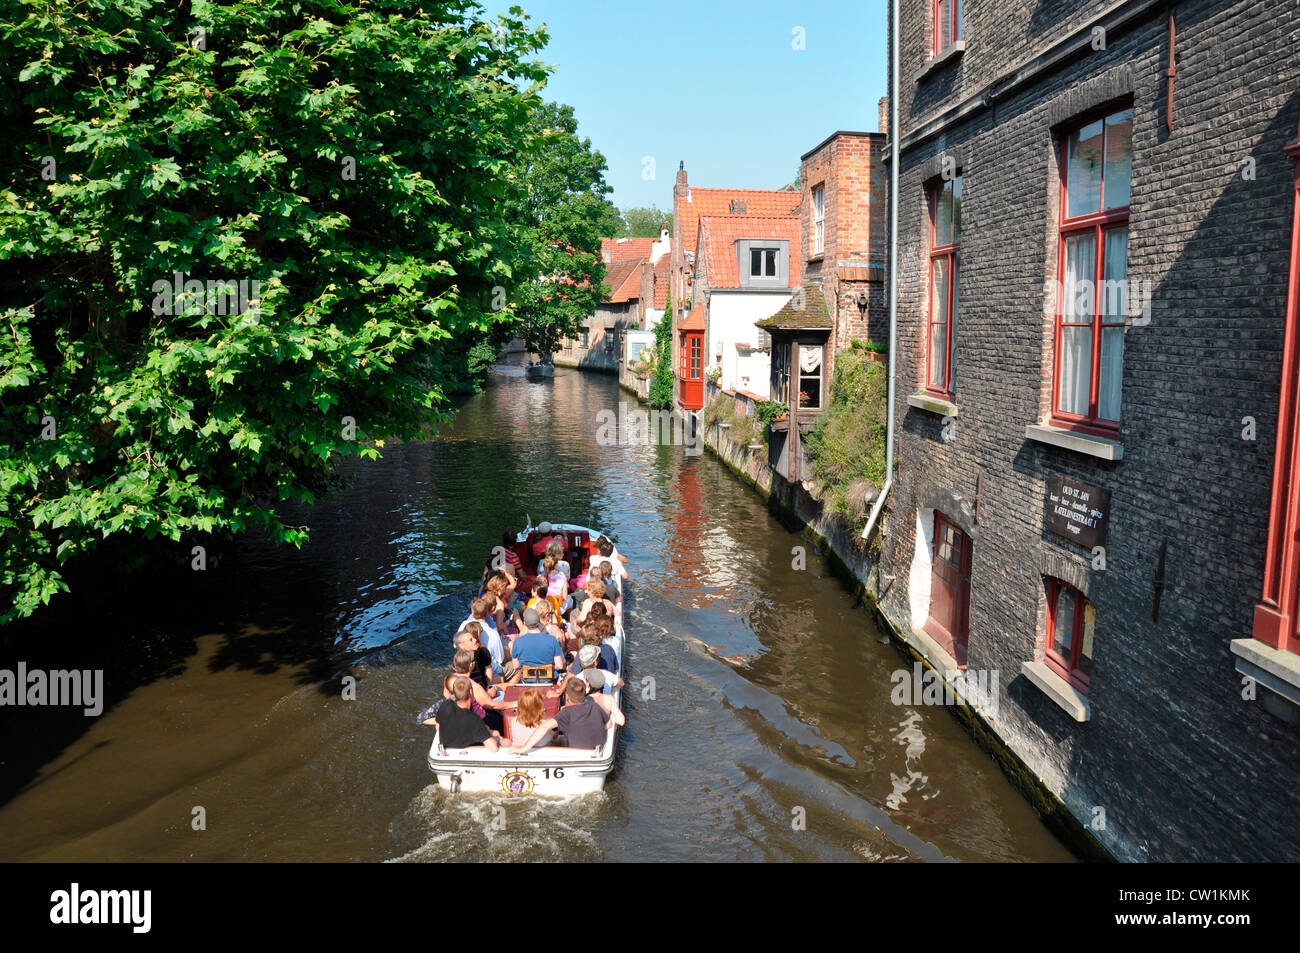 On a hot day in summer, a pleasure boat full of tourists slowly making its way along a Bruges canal. Belgium, Europe. - Stock Image